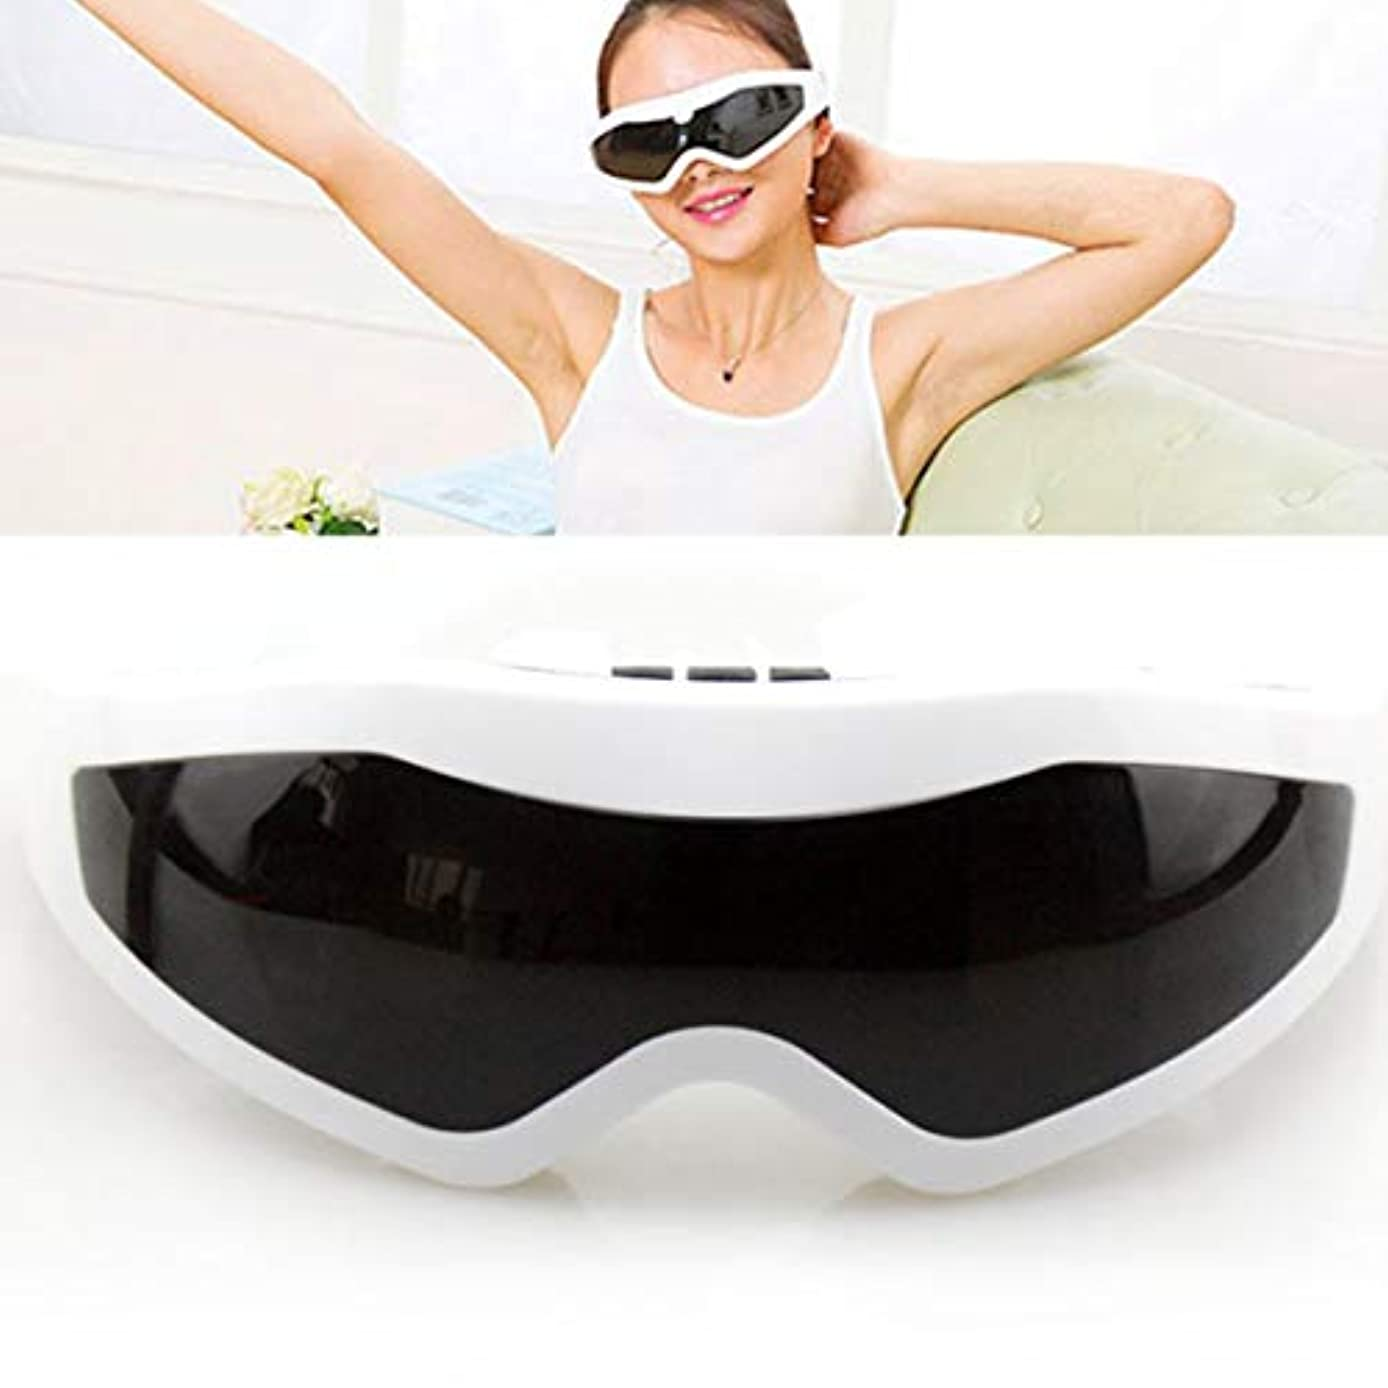 喪寄託トランペットComfortable Electric Eye Massager Men Women Eye Brain Relax Magnetic Eye Health Care Massager Instrument Best...